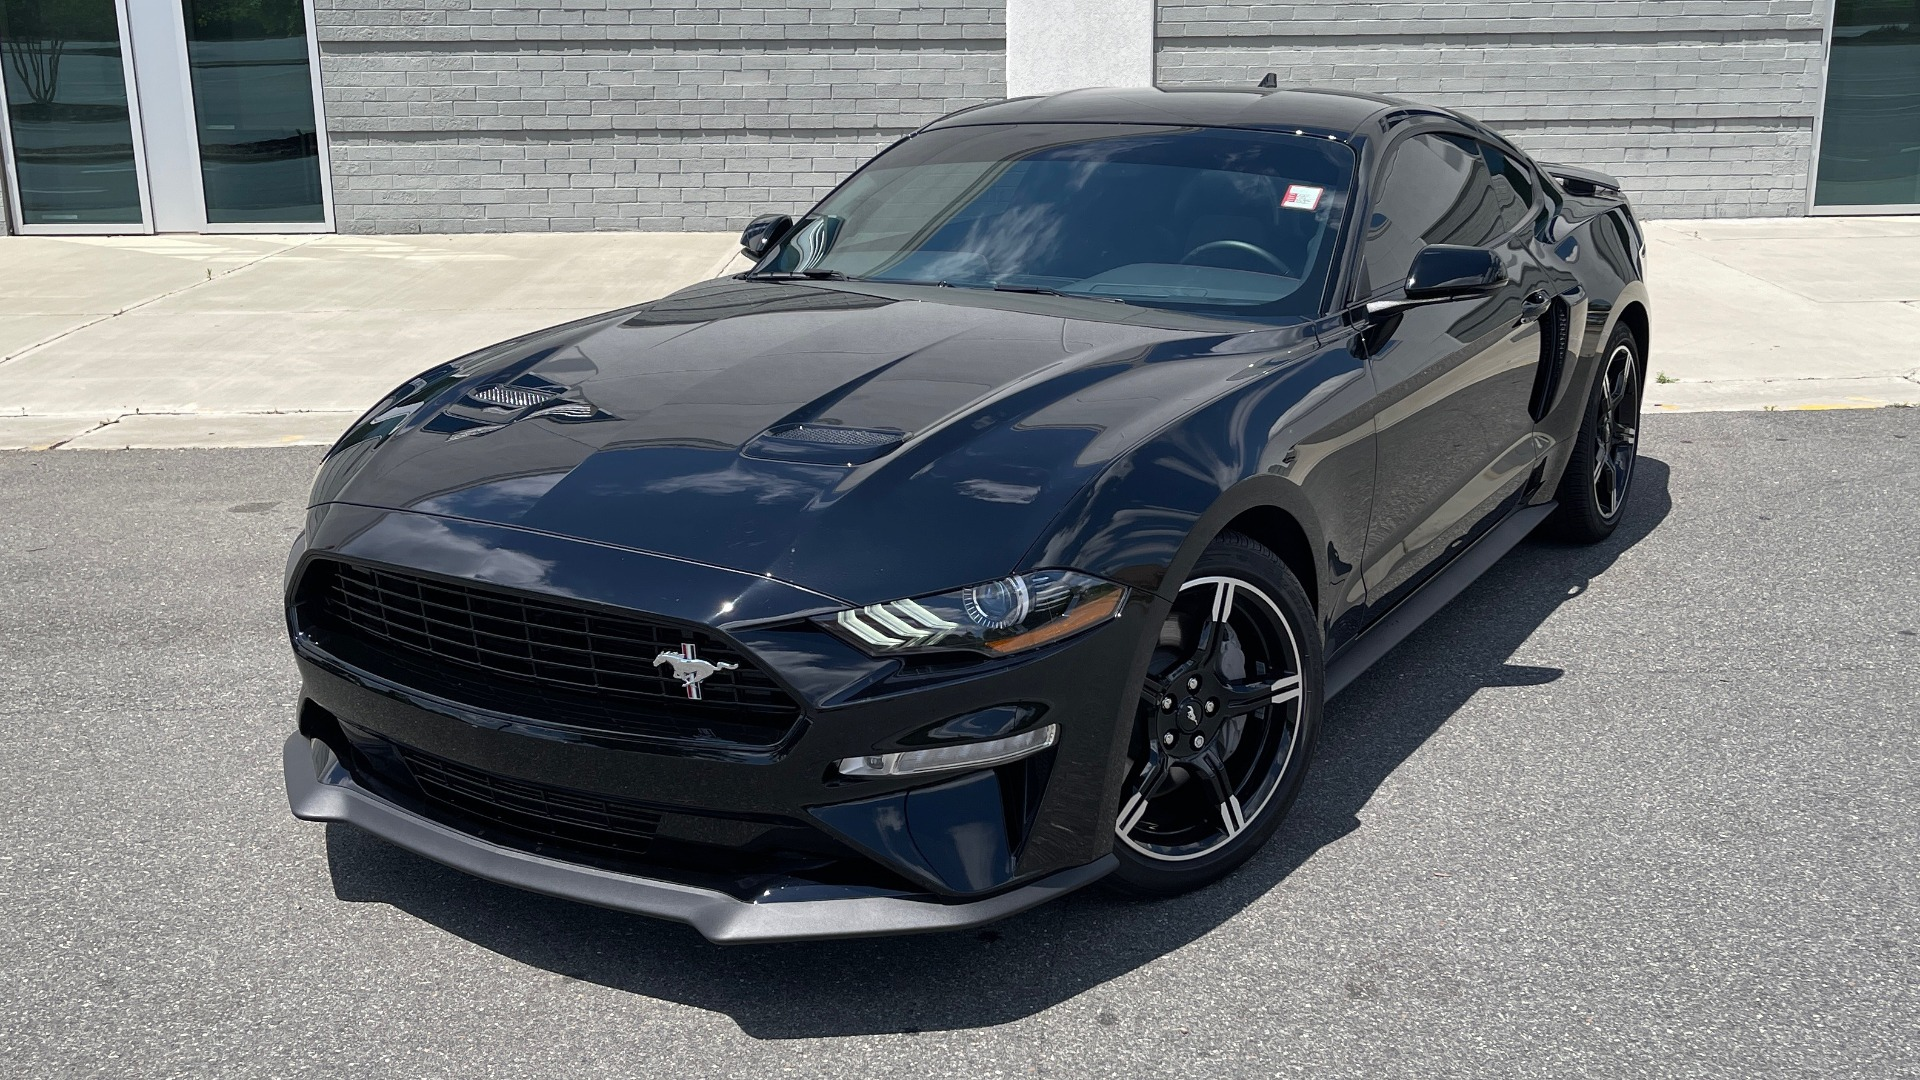 Used 2020 Ford MUSTANG GT PREMIUM / CALIFORNIA SPECIAL / 5.0L V8 / 6-SPD MAN for sale Sold at Formula Imports in Charlotte NC 28227 4